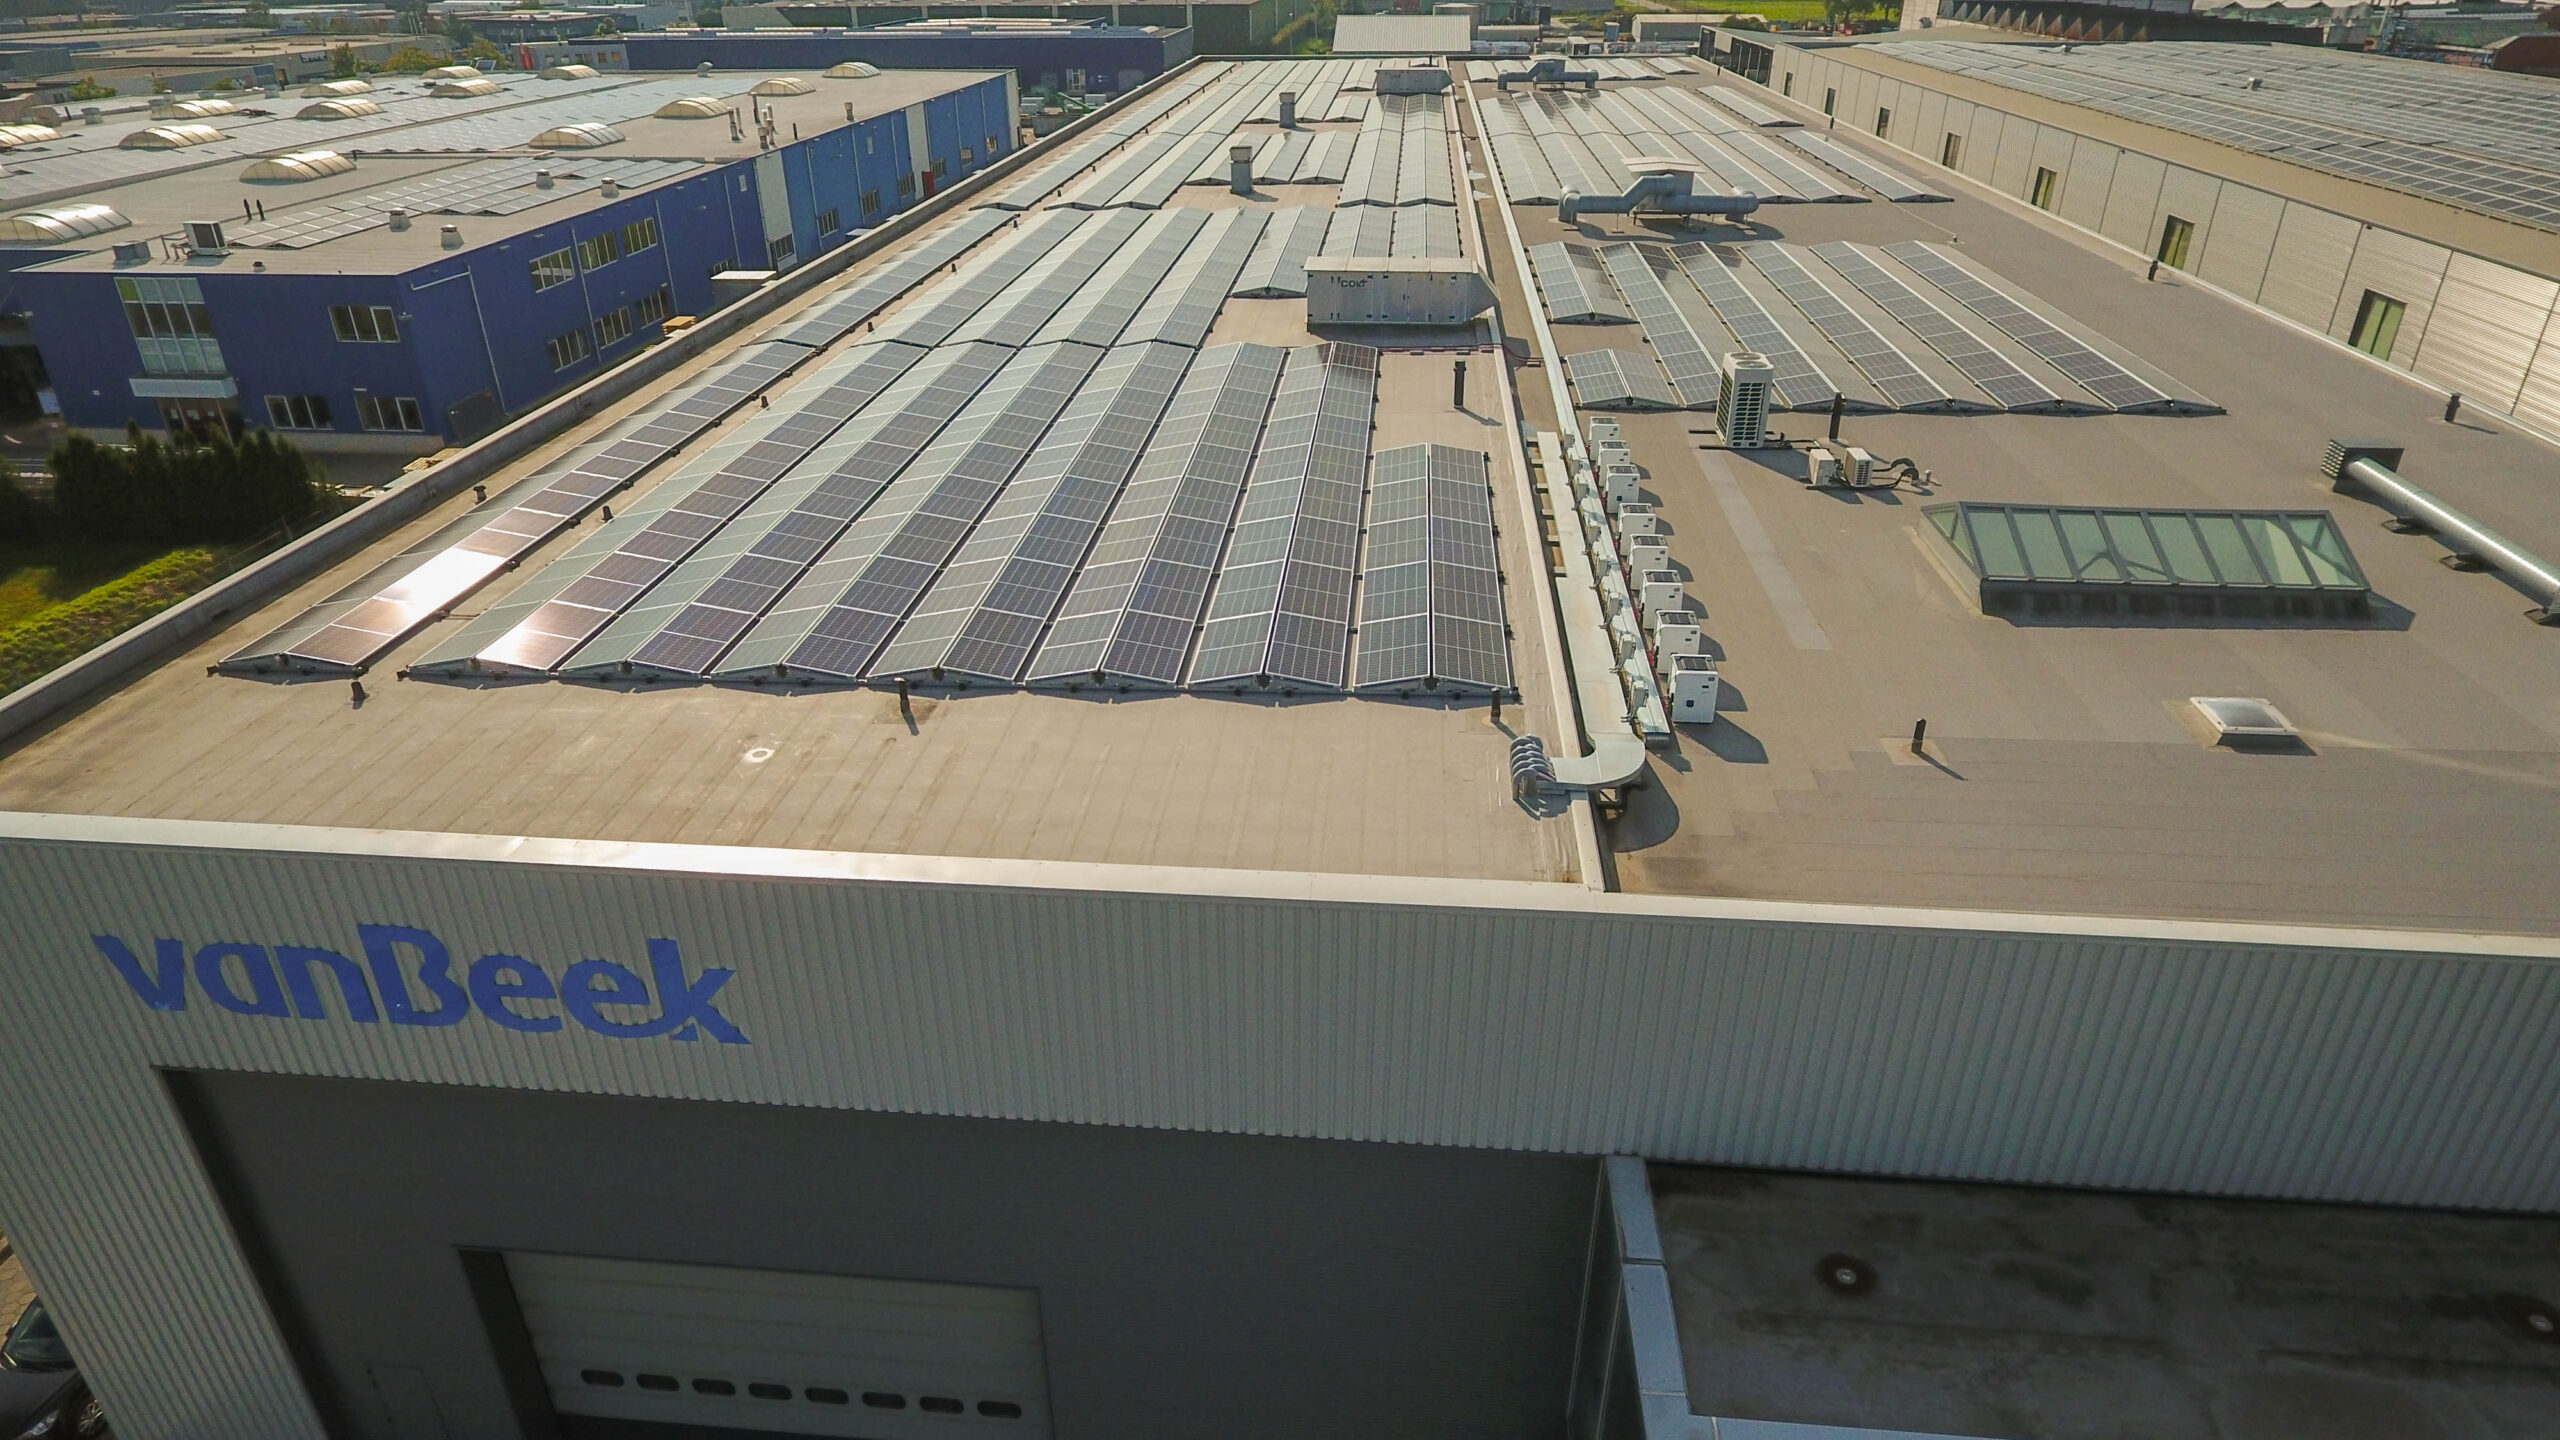 Van Beek takes next step in sustainability with 1300 solar panels